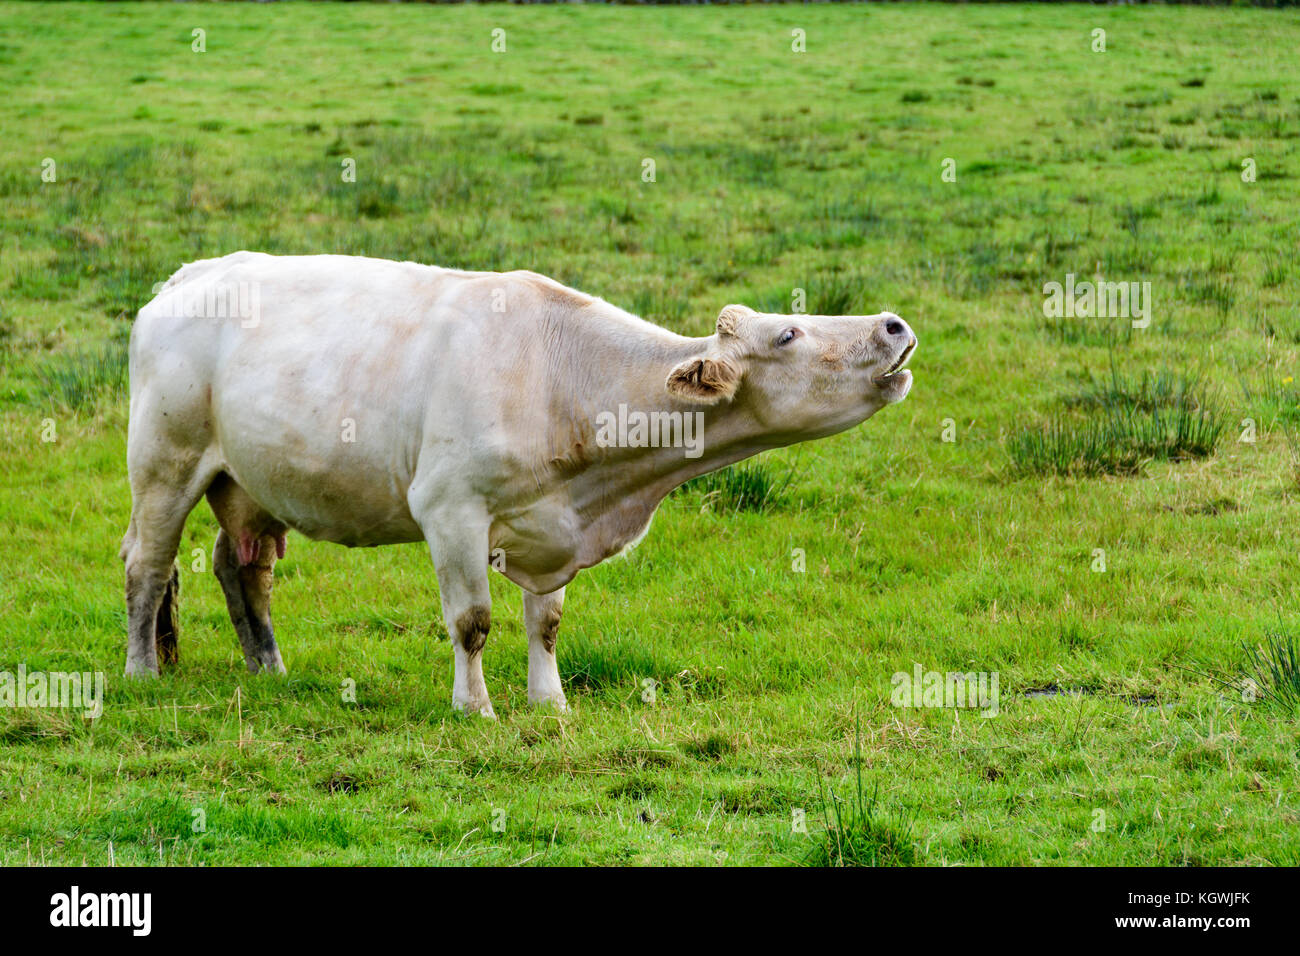 Image result for Images of cows grazing freely